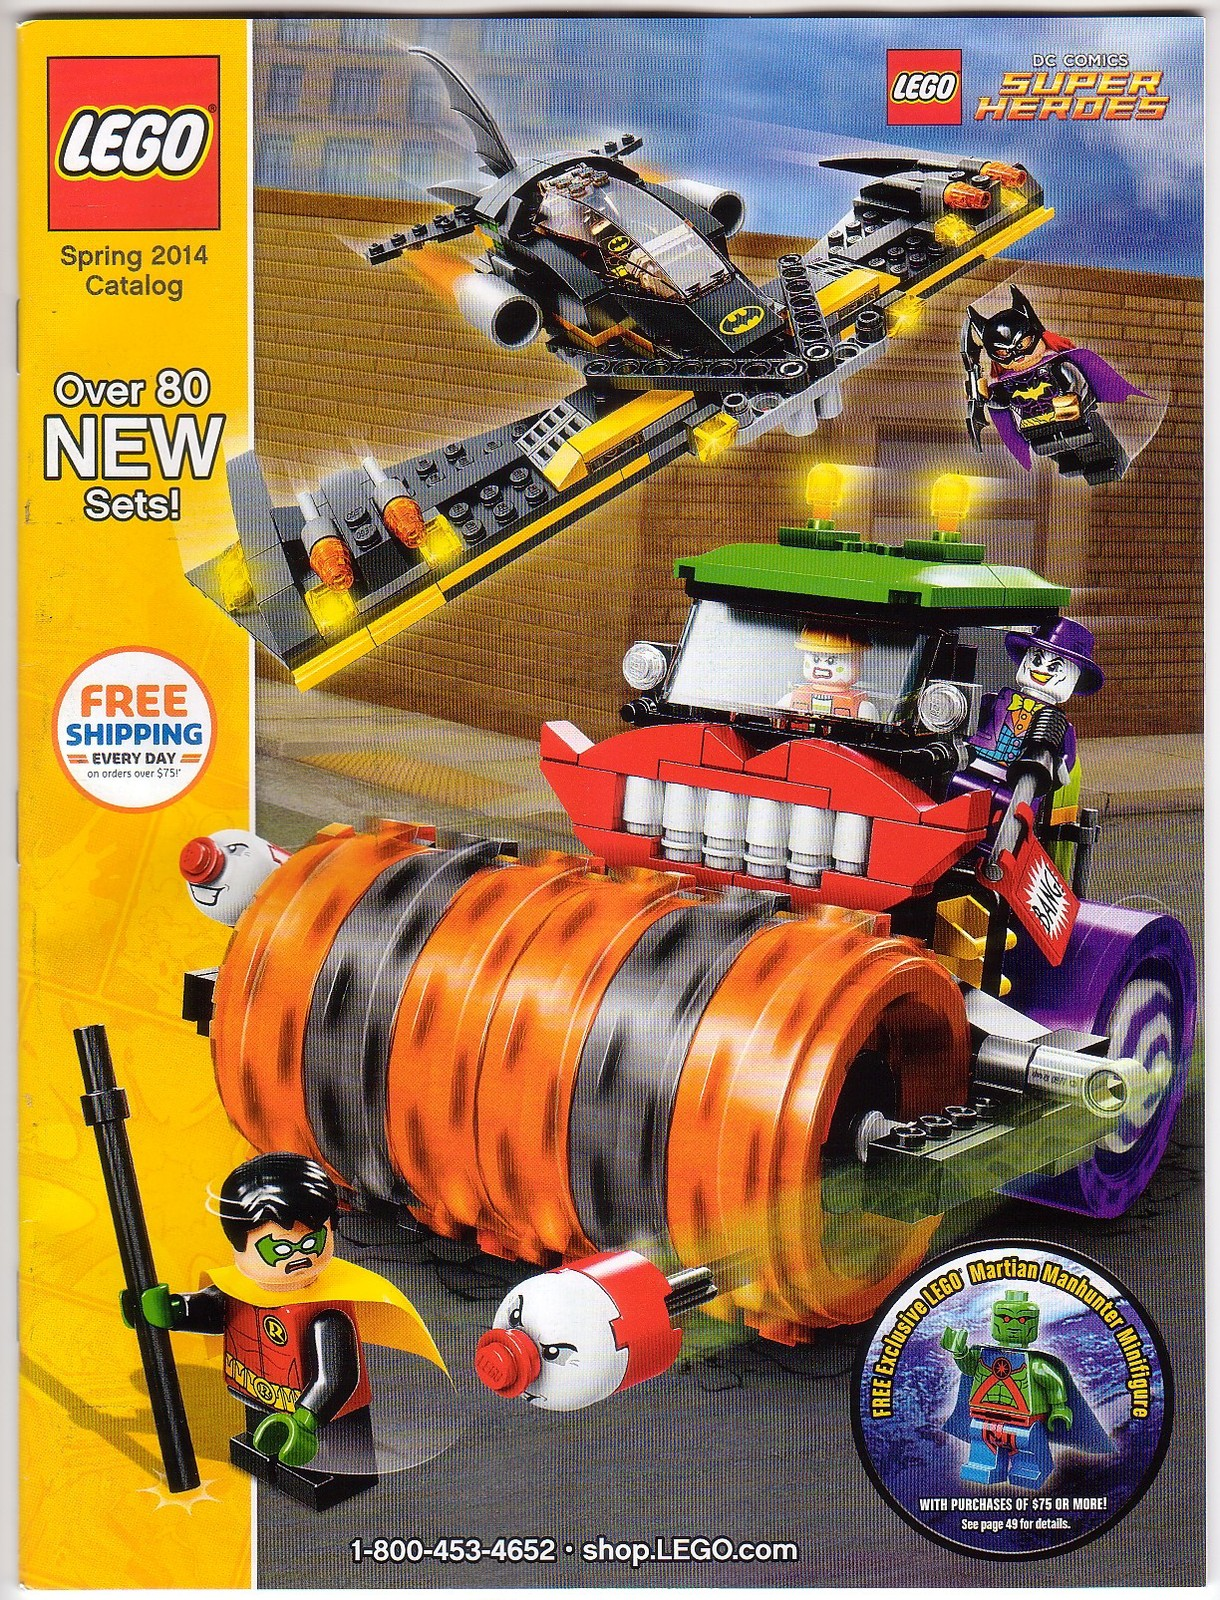 Call us at to request a catalog in English, for a French catalog in Canada, please call Fax your catalog request to us toll-free at FAX-LEGO (). Mail your request to LEGO Catalog Request, PO Box , Enfield, CT